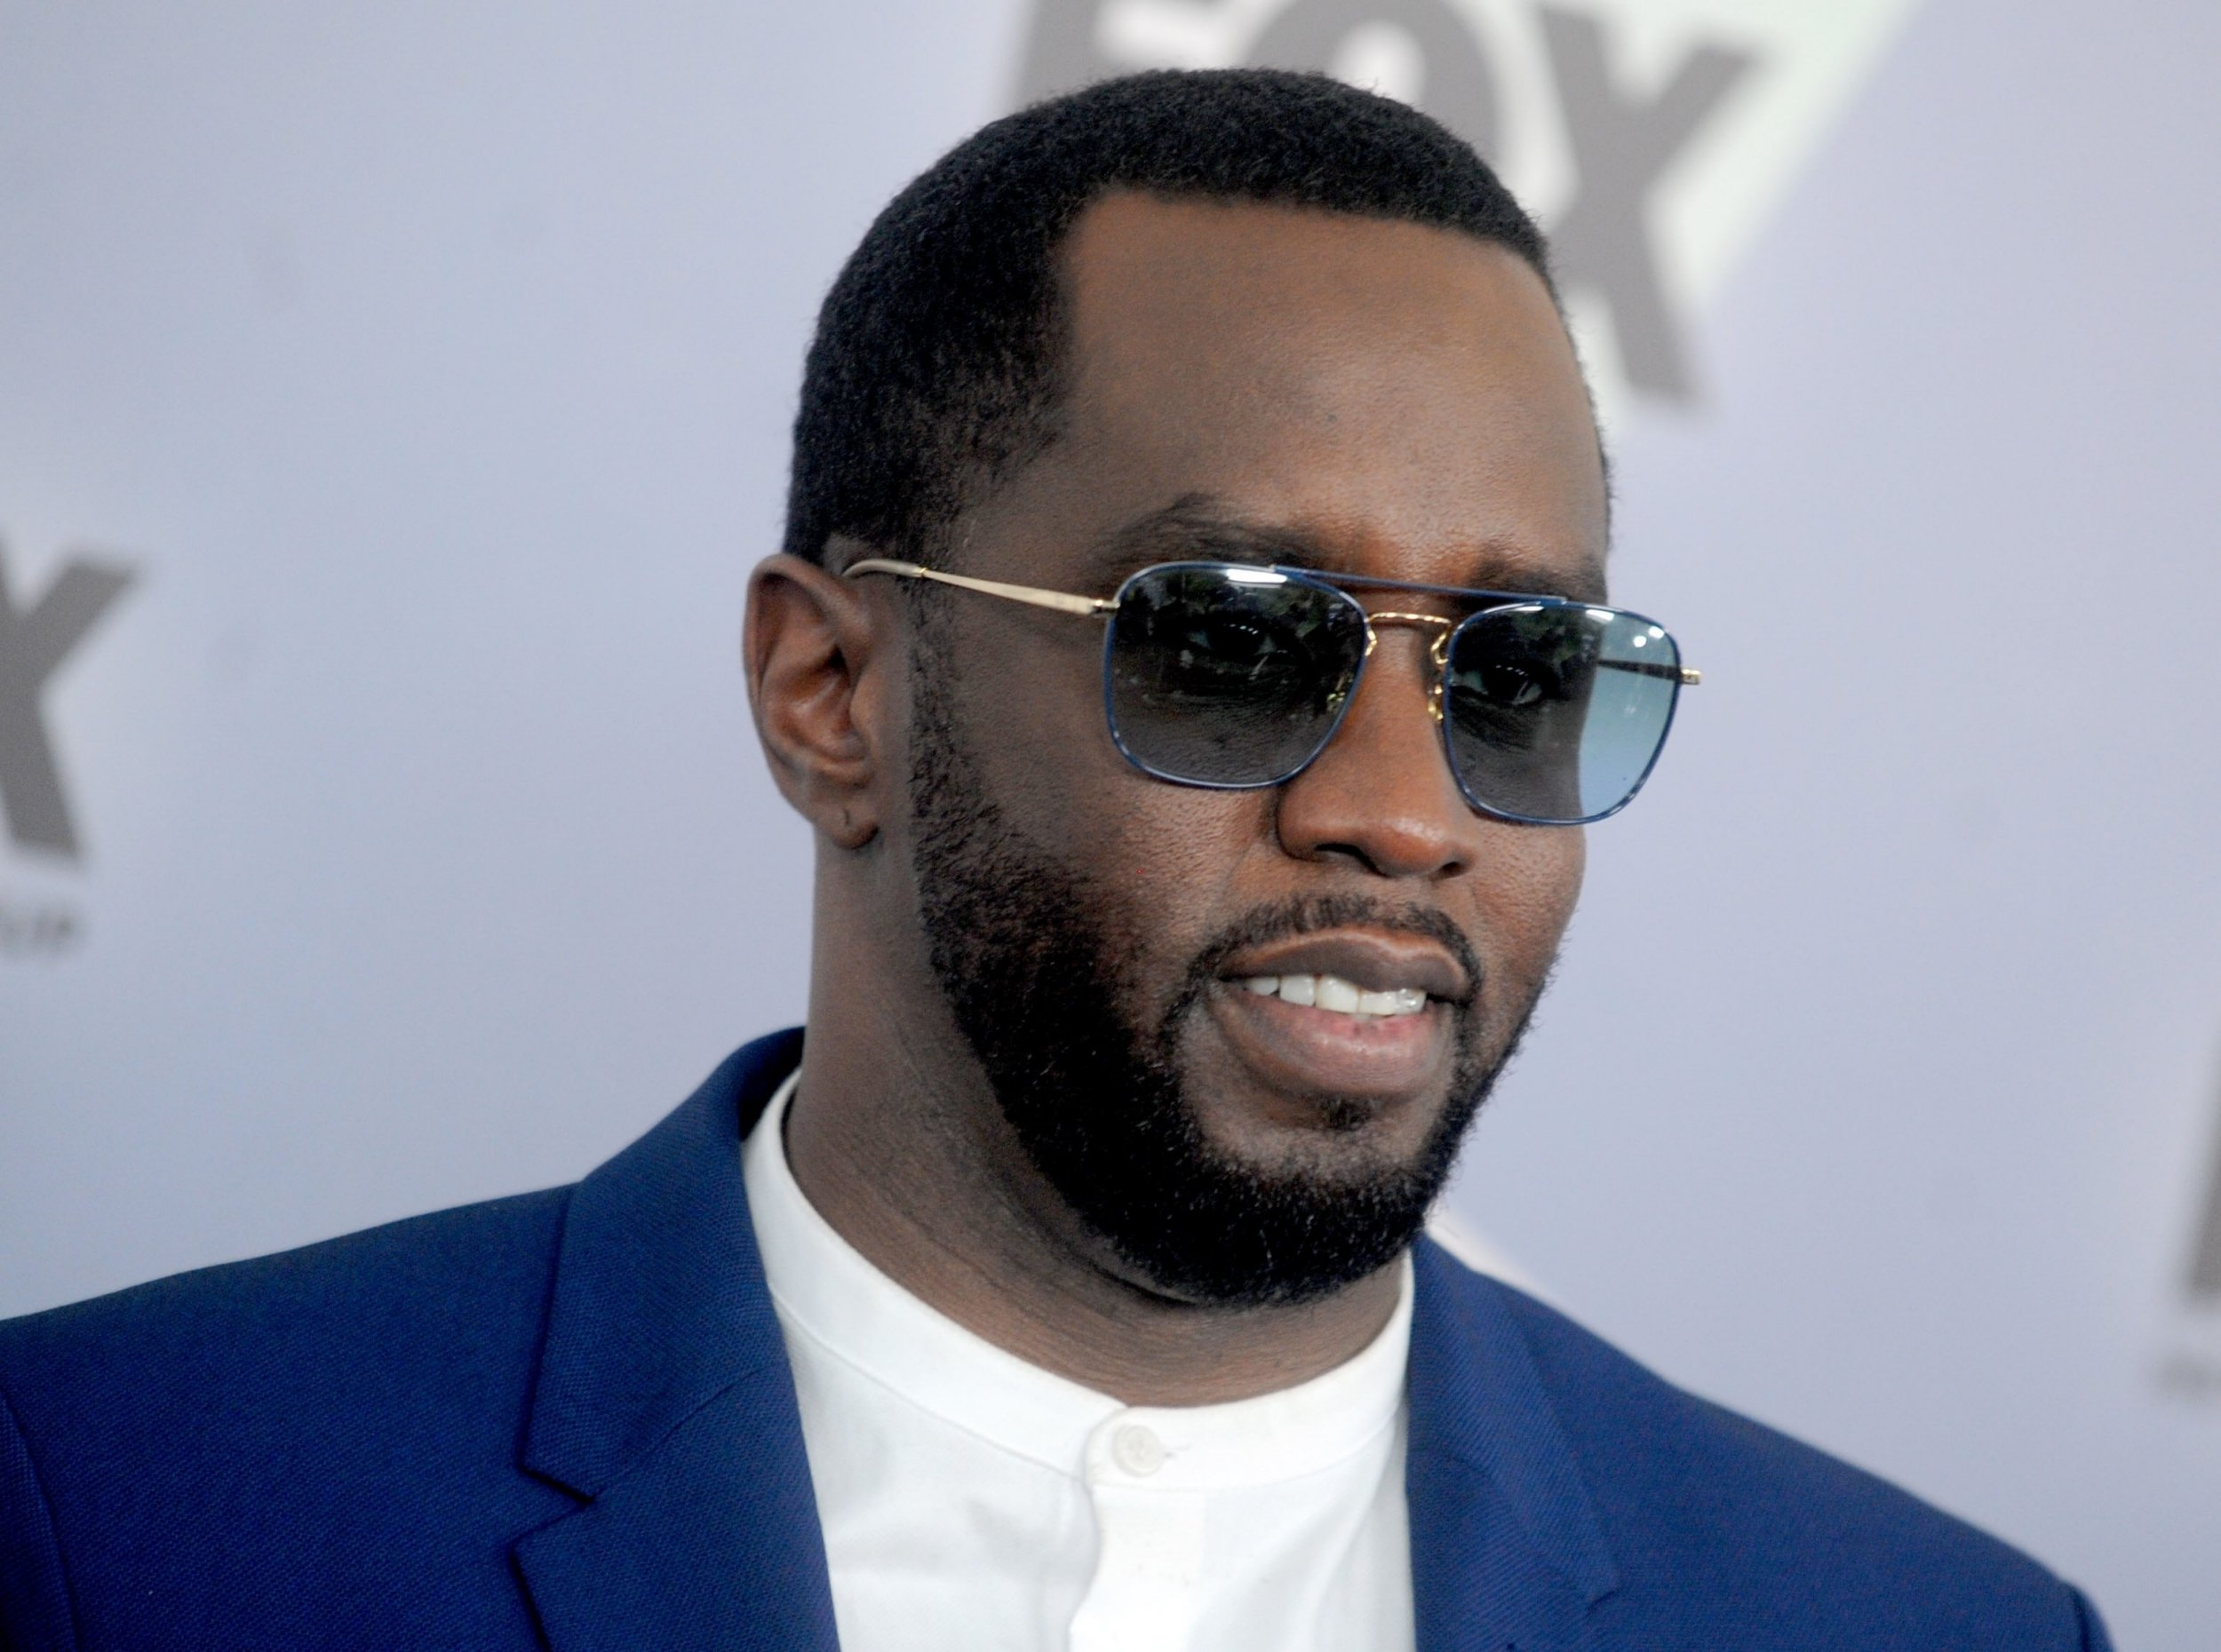 BGUK_1236448 - New York City, New - Celebrities attend the 2018 Fox Network Upfront at the Wollman Rink in New York City. Pictured: Sean 'Diddy' Combs BACKGRID UK 14 MAY 2018 UK: +44 208 344 2007 / uksales@backgrid.com USA: +1 310 798 9111 / usasales@backgrid.com *UK Clients - Pictures Containing Children Please Pixelate Face Prior To Publication*